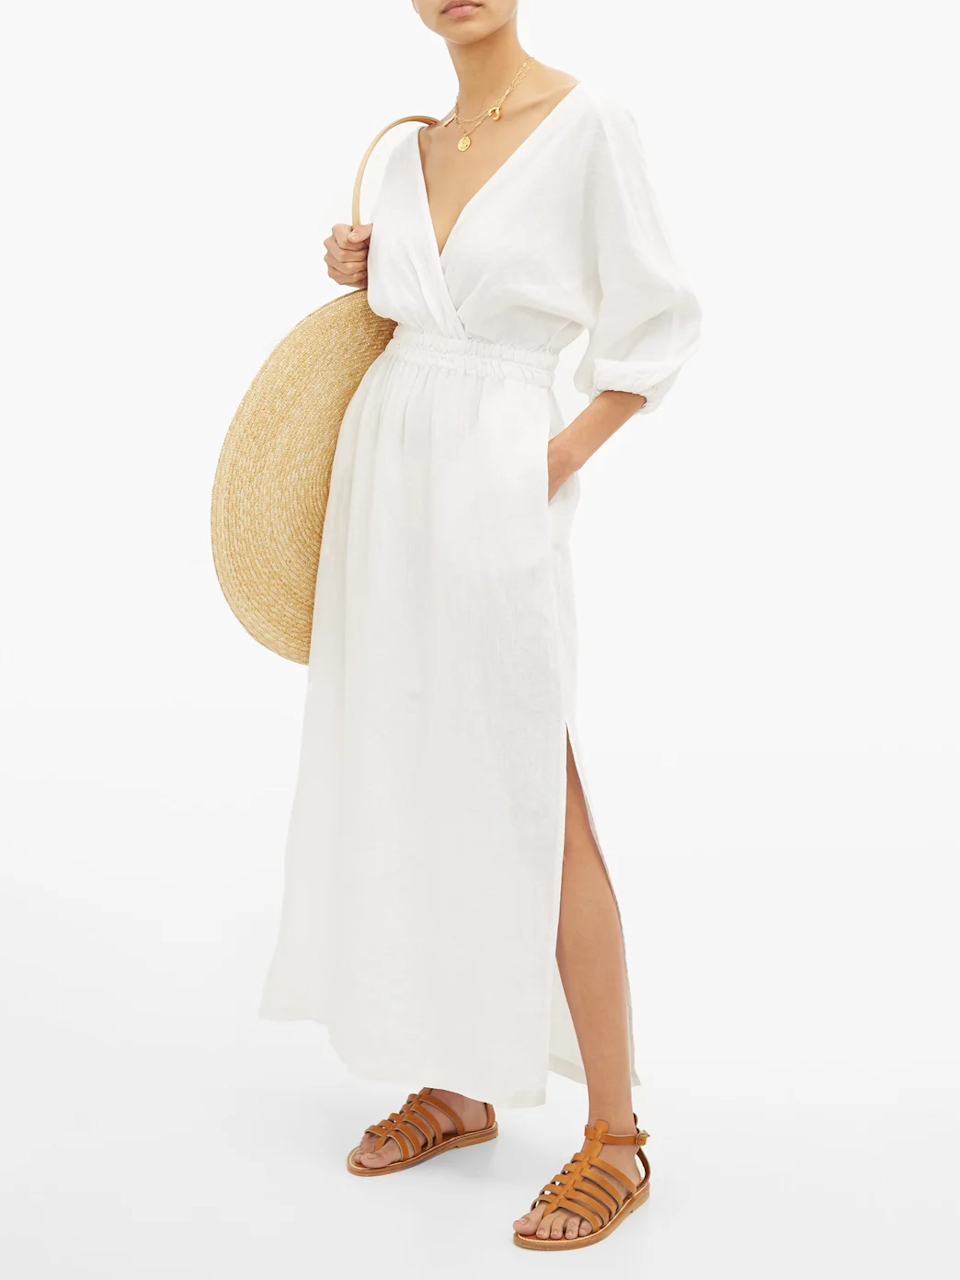 "Not only is this dress made of 100% sustainable linen, it's also perfect for the vacation your mom's been dreaming of ever since she went into self-quarantine. Maybe once we can travel again, you can take her on that trip. <br> <br> <strong>Mara Hoffman</strong> Nami Balloon Sleeve Linen Maxi Dress, $, available at <a href=""https://go.skimresources.com/?id=30283X879131&url=https%3A%2F%2Fwww.matchesfashion.com%2Fus%2Fproducts%2FMara-Hoffman-Nami-balloon-sleeve-linen-maxi-dress--1286834"" rel=""nofollow noopener"" target=""_blank"" data-ylk=""slk:Matches Fashion"" class=""link rapid-noclick-resp"">Matches Fashion</a>"